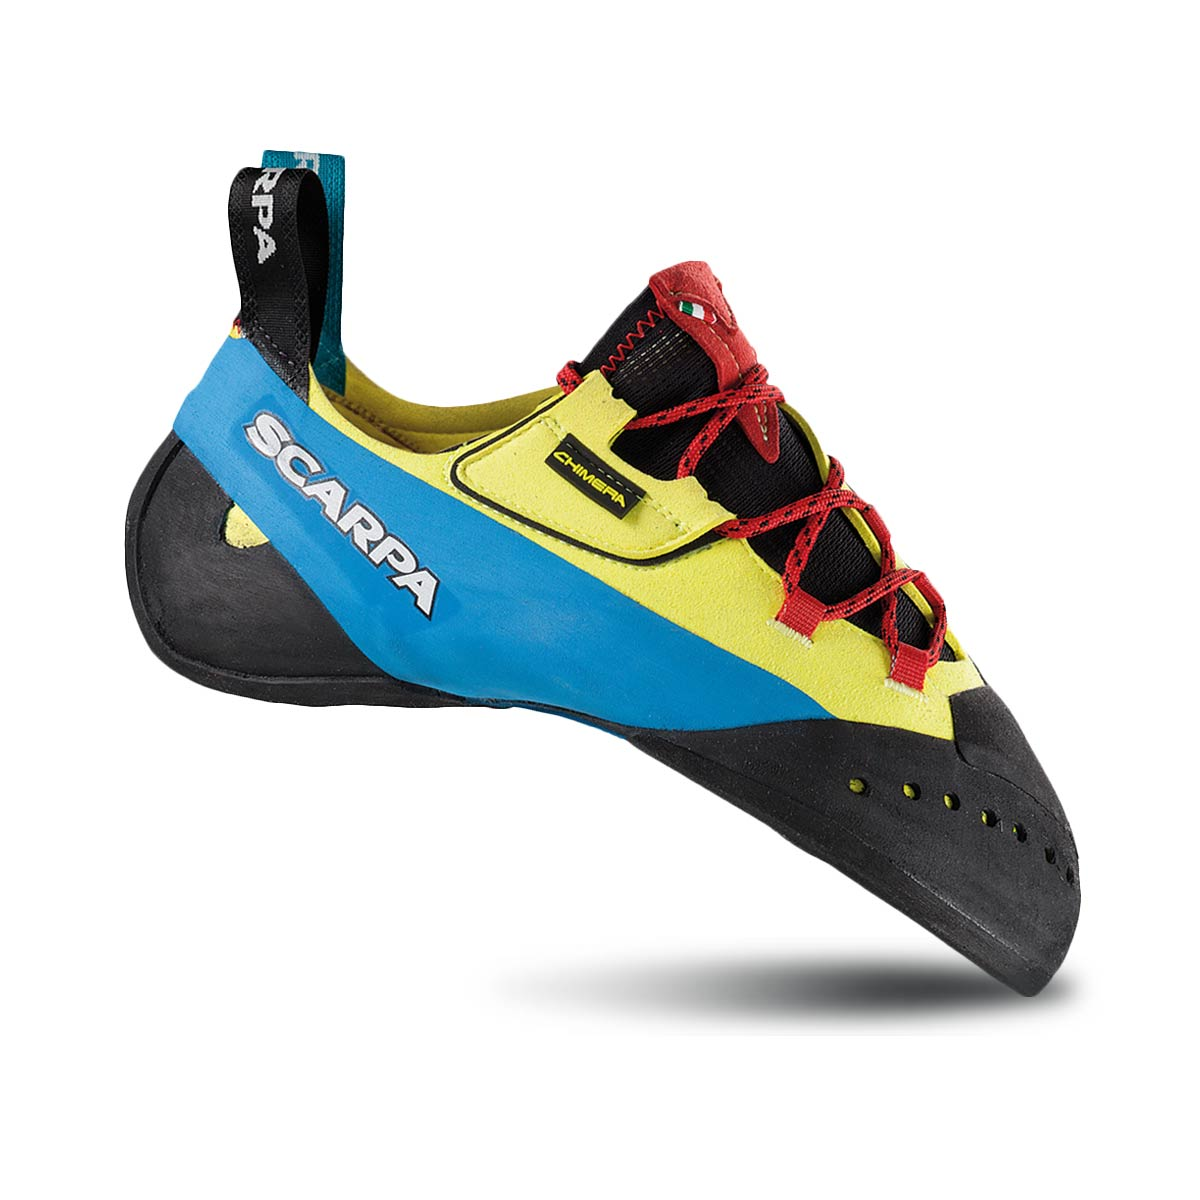 Best Sensitive Climbing Shoes